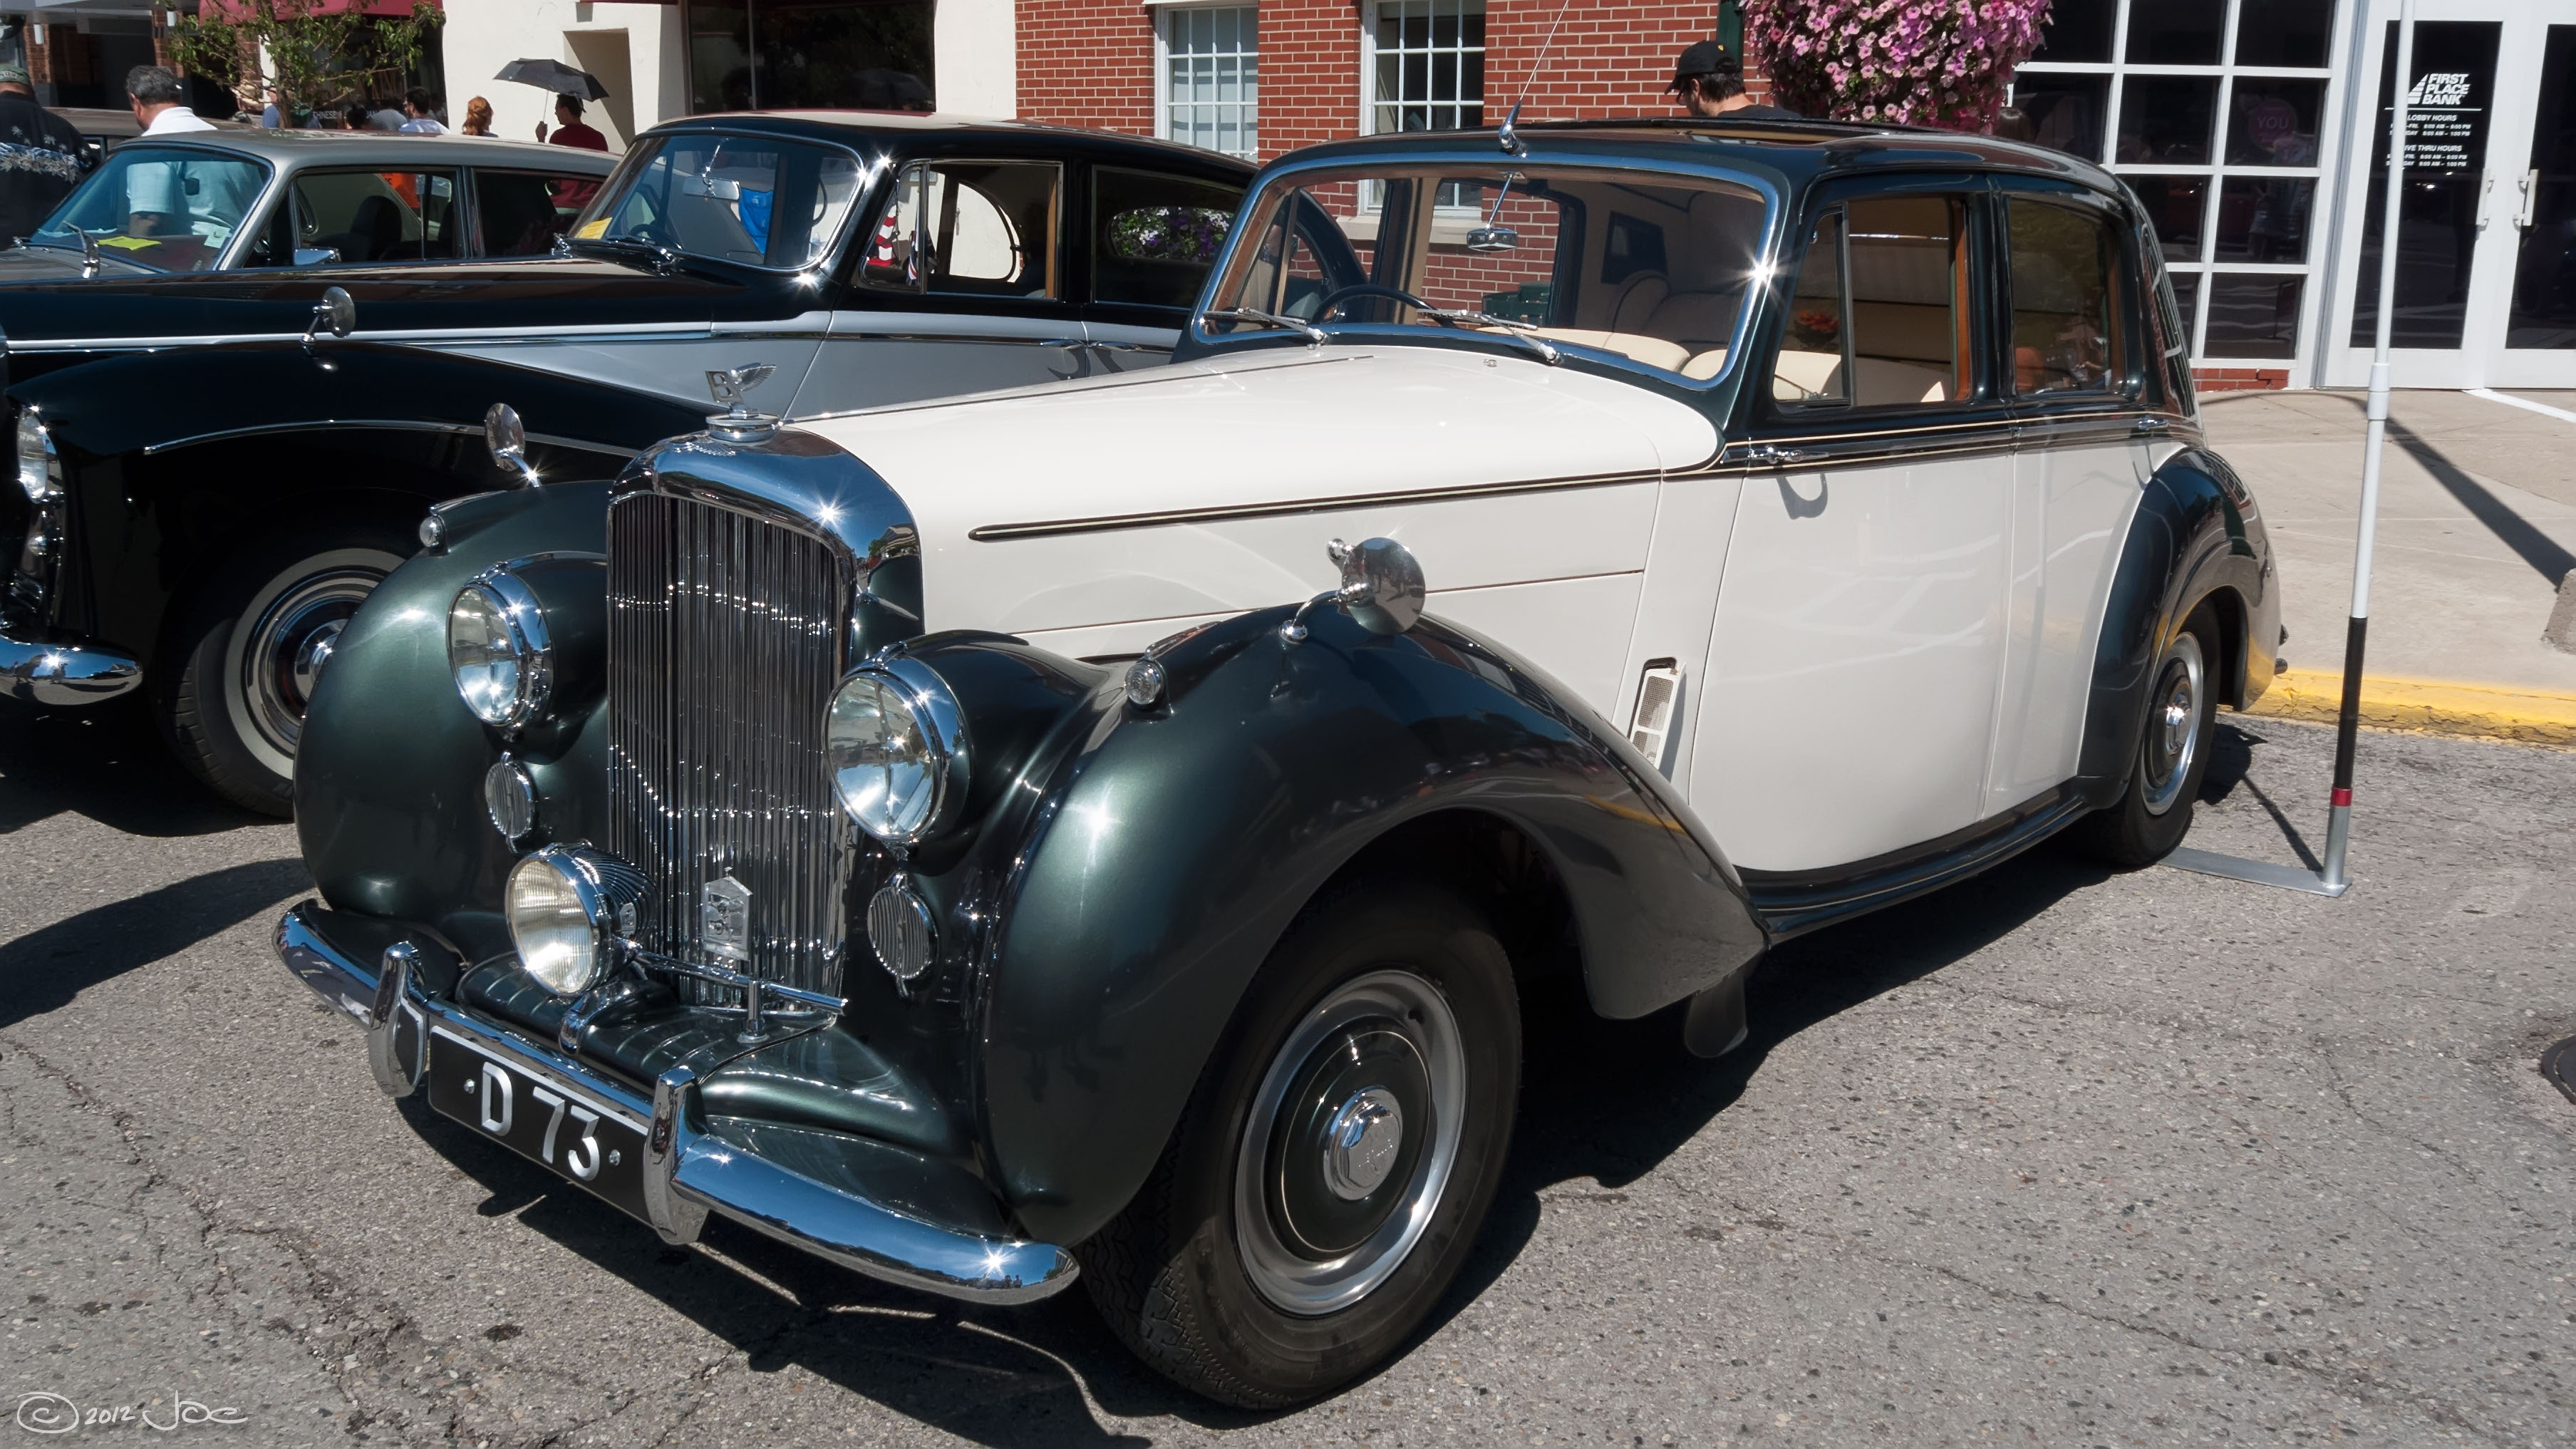 1953 Bentley R Type, 2012, Car, Classic car, Cruise, HQ Photo